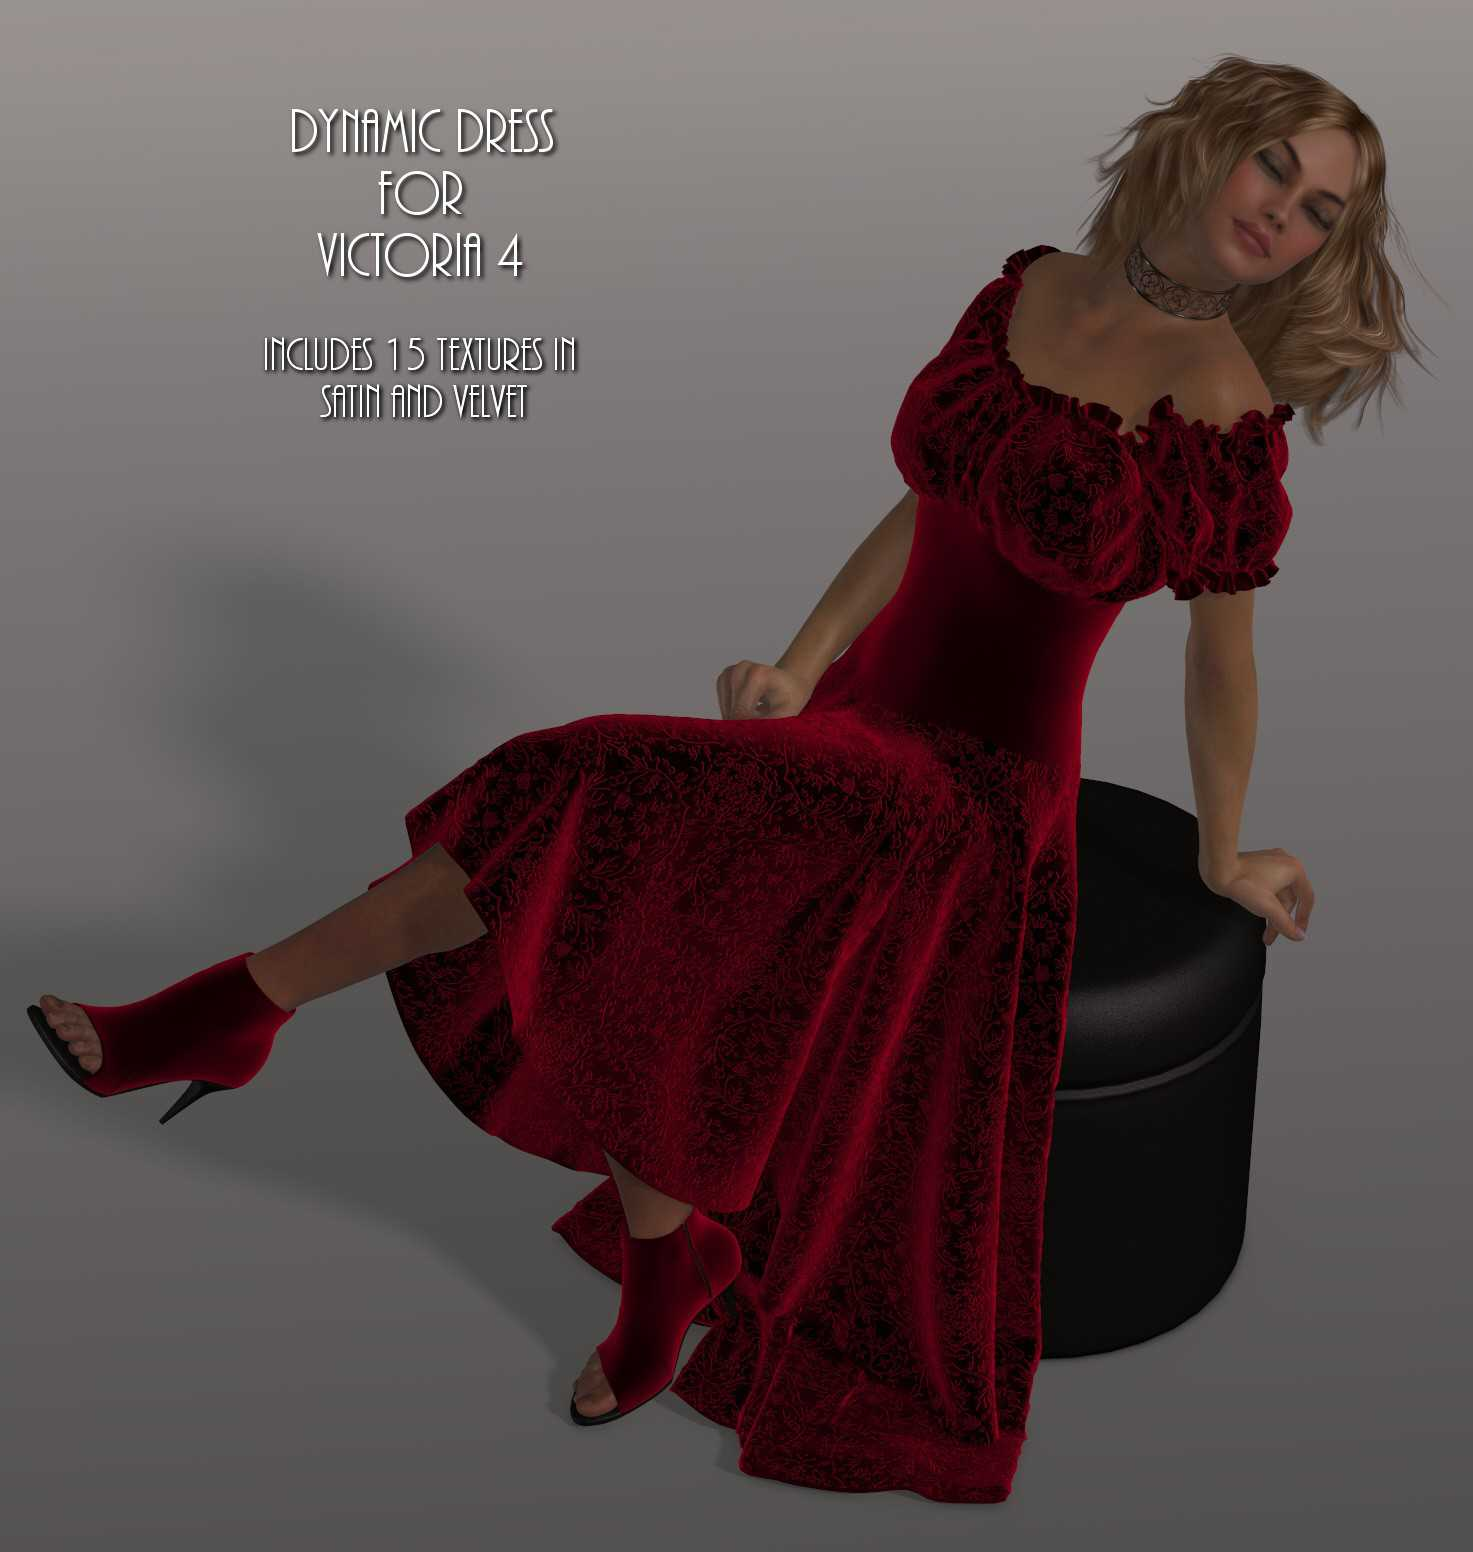 Dynamics 12 - Wench Dress for Victoria 4